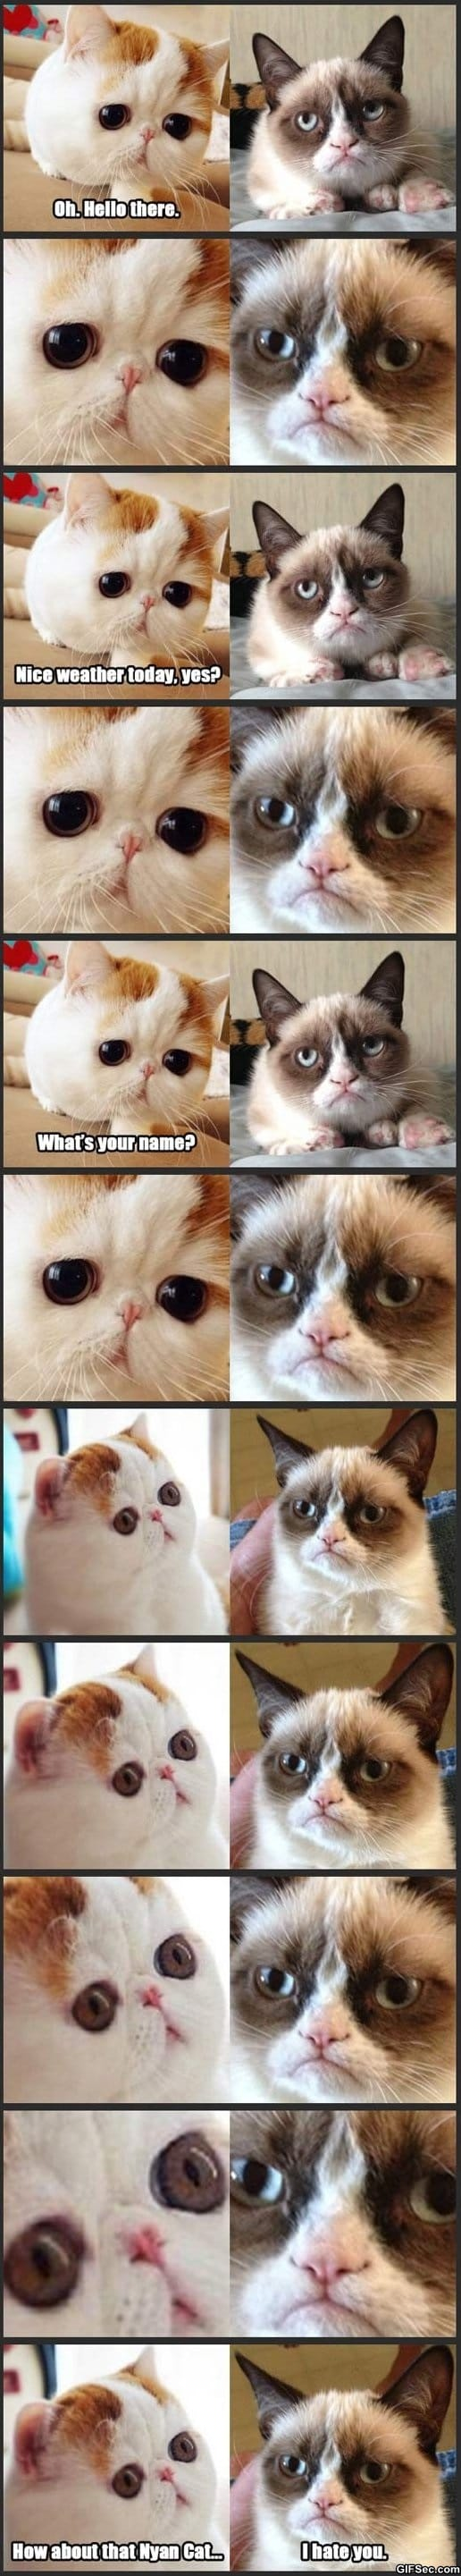 lol-snoopy-cat-meets-grumpy-cat